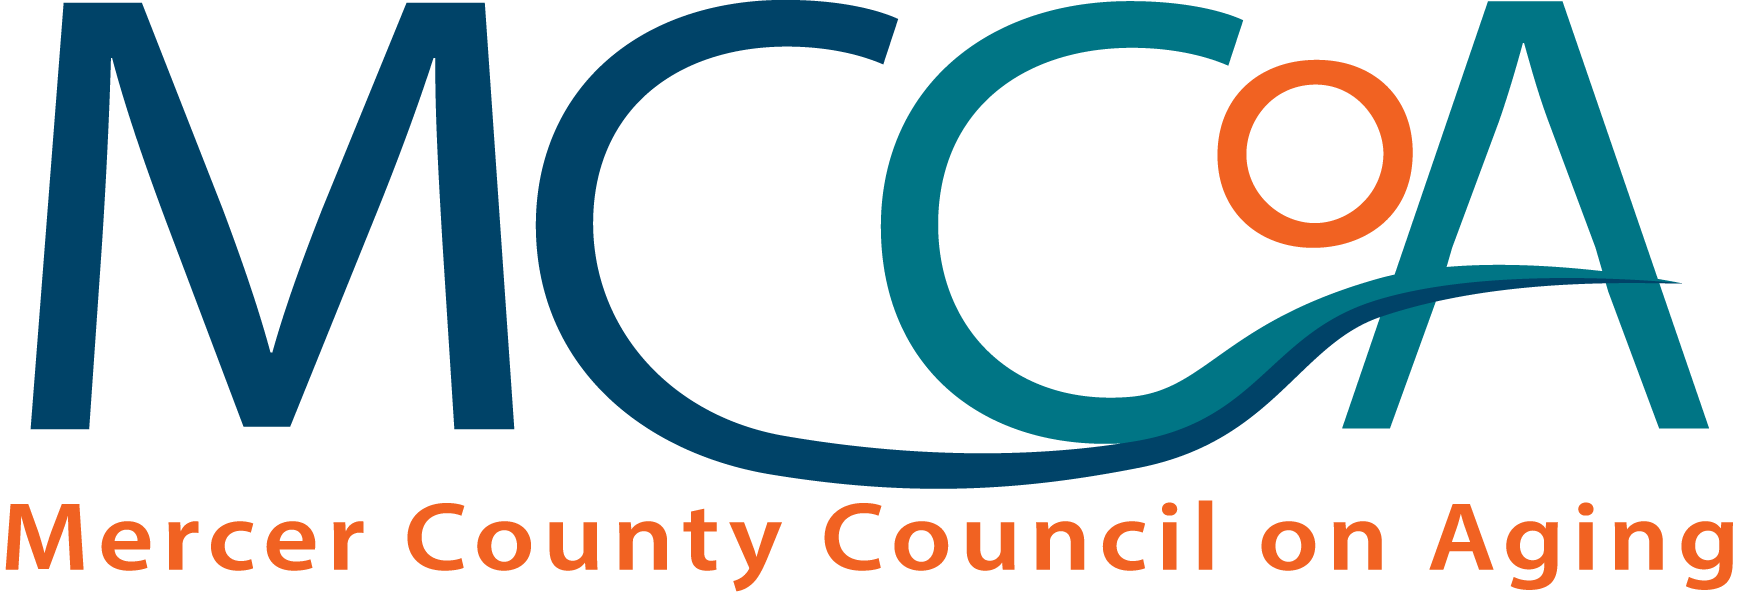 Mercer County Council on Aging